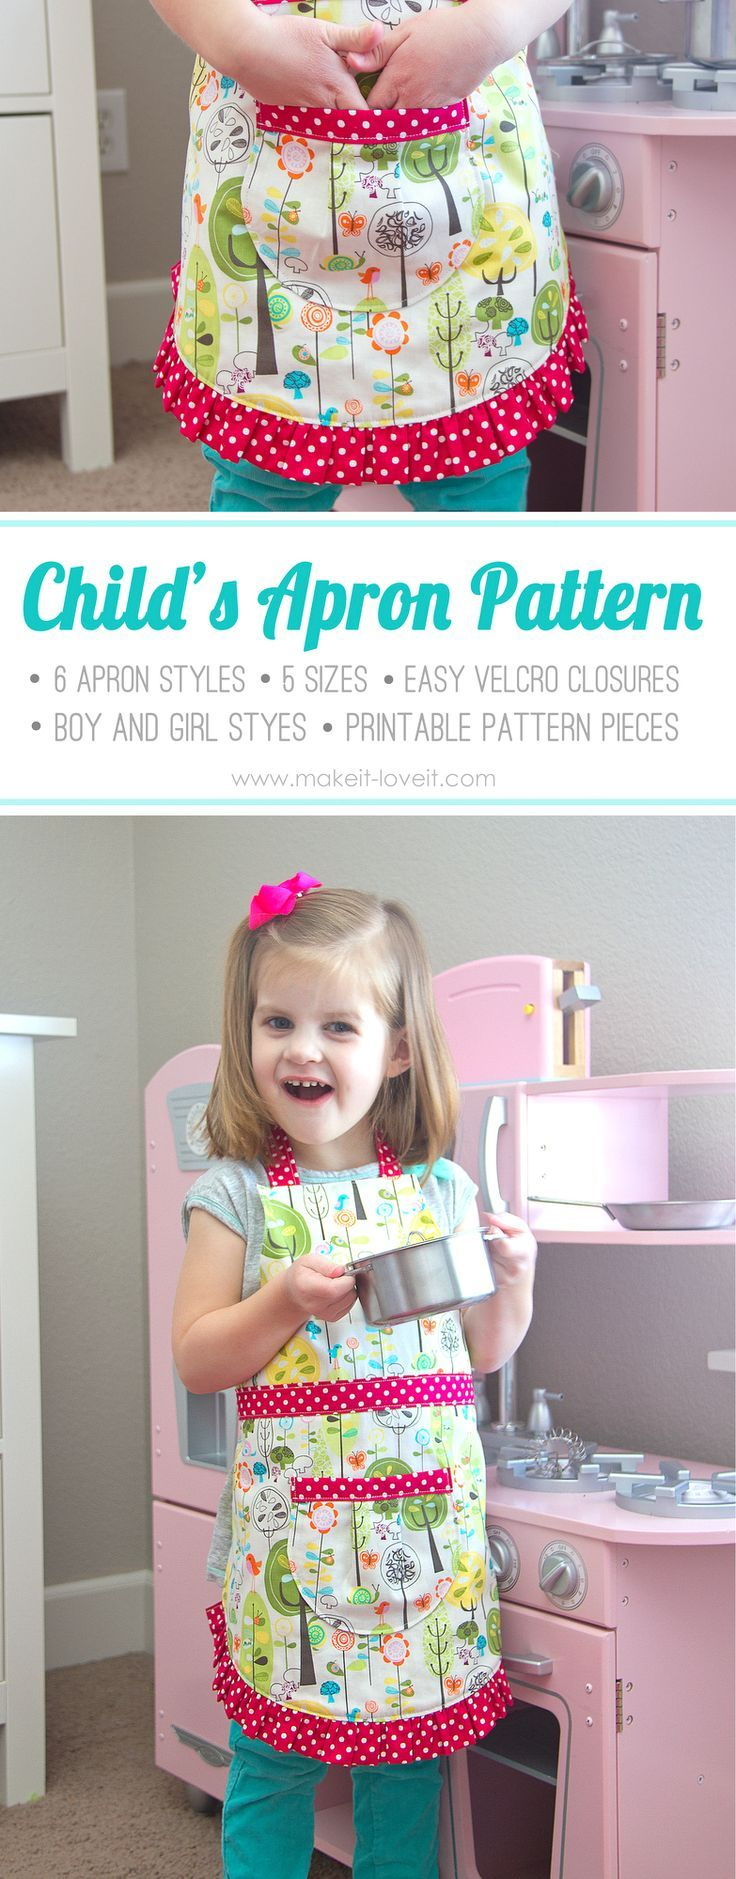 Ruffle Apron PDF Pattern (6 apron girl & boy styles, 5 sizes, easy Velcro closure, printable pattern pieces) | via Make It and Love It #iloverileyblake